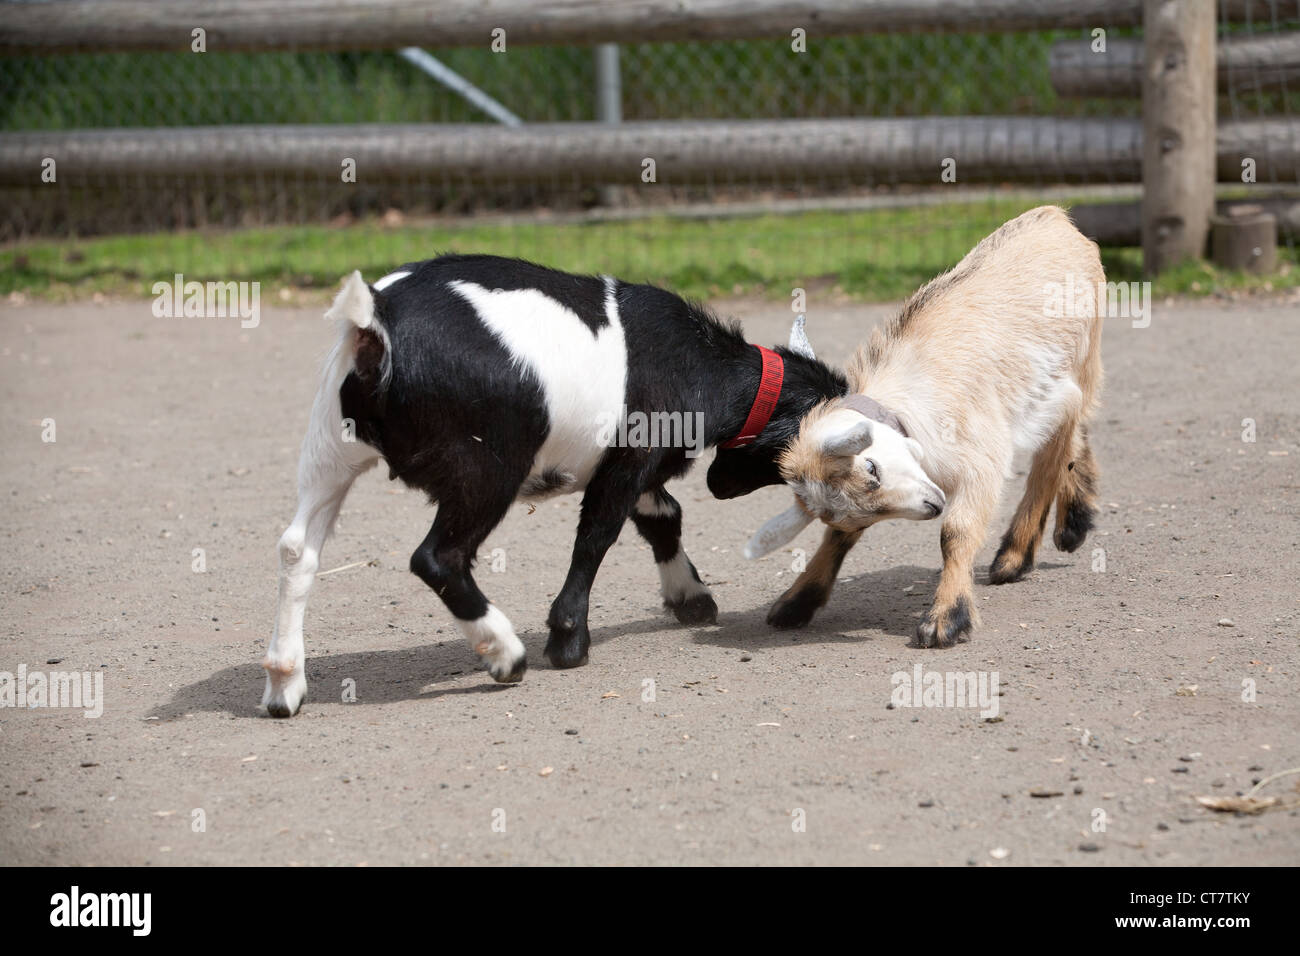 Two Baby Goats Butting Heads